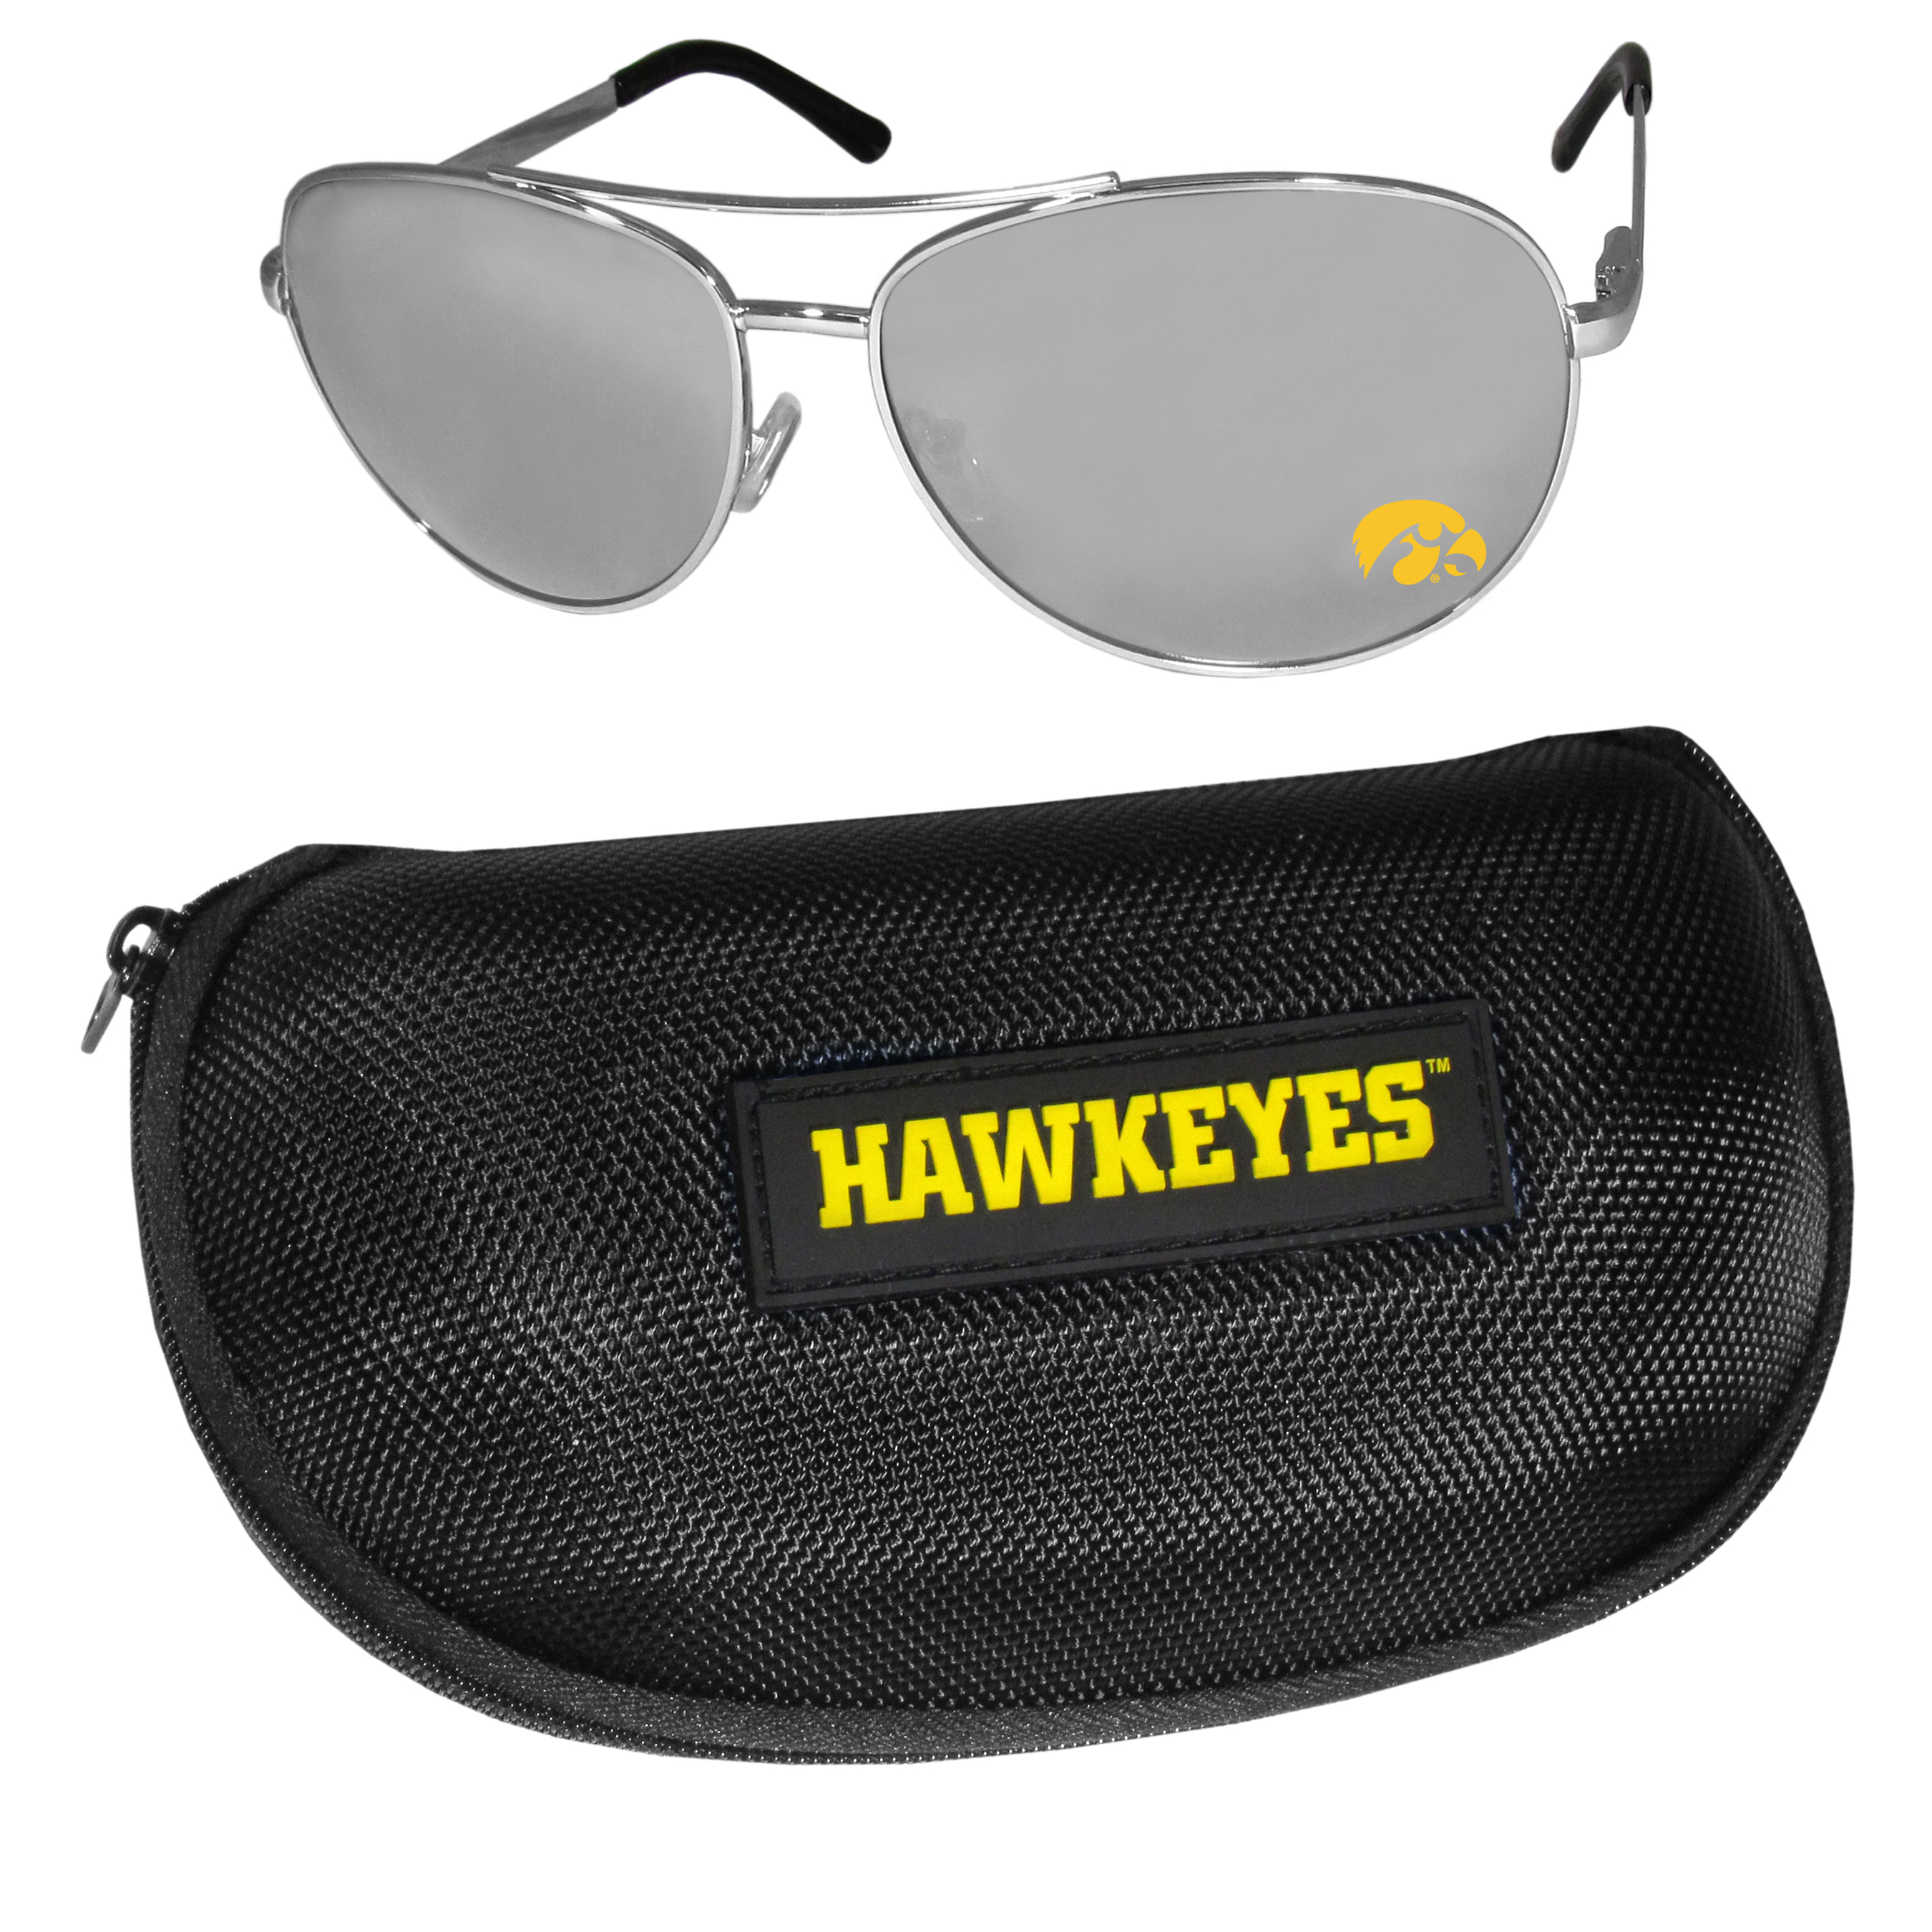 Iowa Hawkeyes Aviator Sunglasses and Zippered Carrying Case - Aviator sunglasses are truly an iconic retro fashion statement that never goes out-of-style. Our Iowa Hawkeyes  aviator sunglasses pair this classic look with your love of the game. The iridium coated lenses reduce glare while driving, boating, golfing and their 100% UVA/UVB rating provides you with the maximum UV protection for all your outdoor activities. A millennial favorite, these affordable designer frames are the perfect eyewear accessory for a sports fan that is looking for high-quality at an affordable price. The durable, flex hinged frames are tough enough for hiking and camping or if you prefer sun bathing by the pool or on the beach these shades will really stand the test of time. The sunglasses come with a hard shell zippered case which has a large team logo on the lid that will make even the most die-hard fan proud!